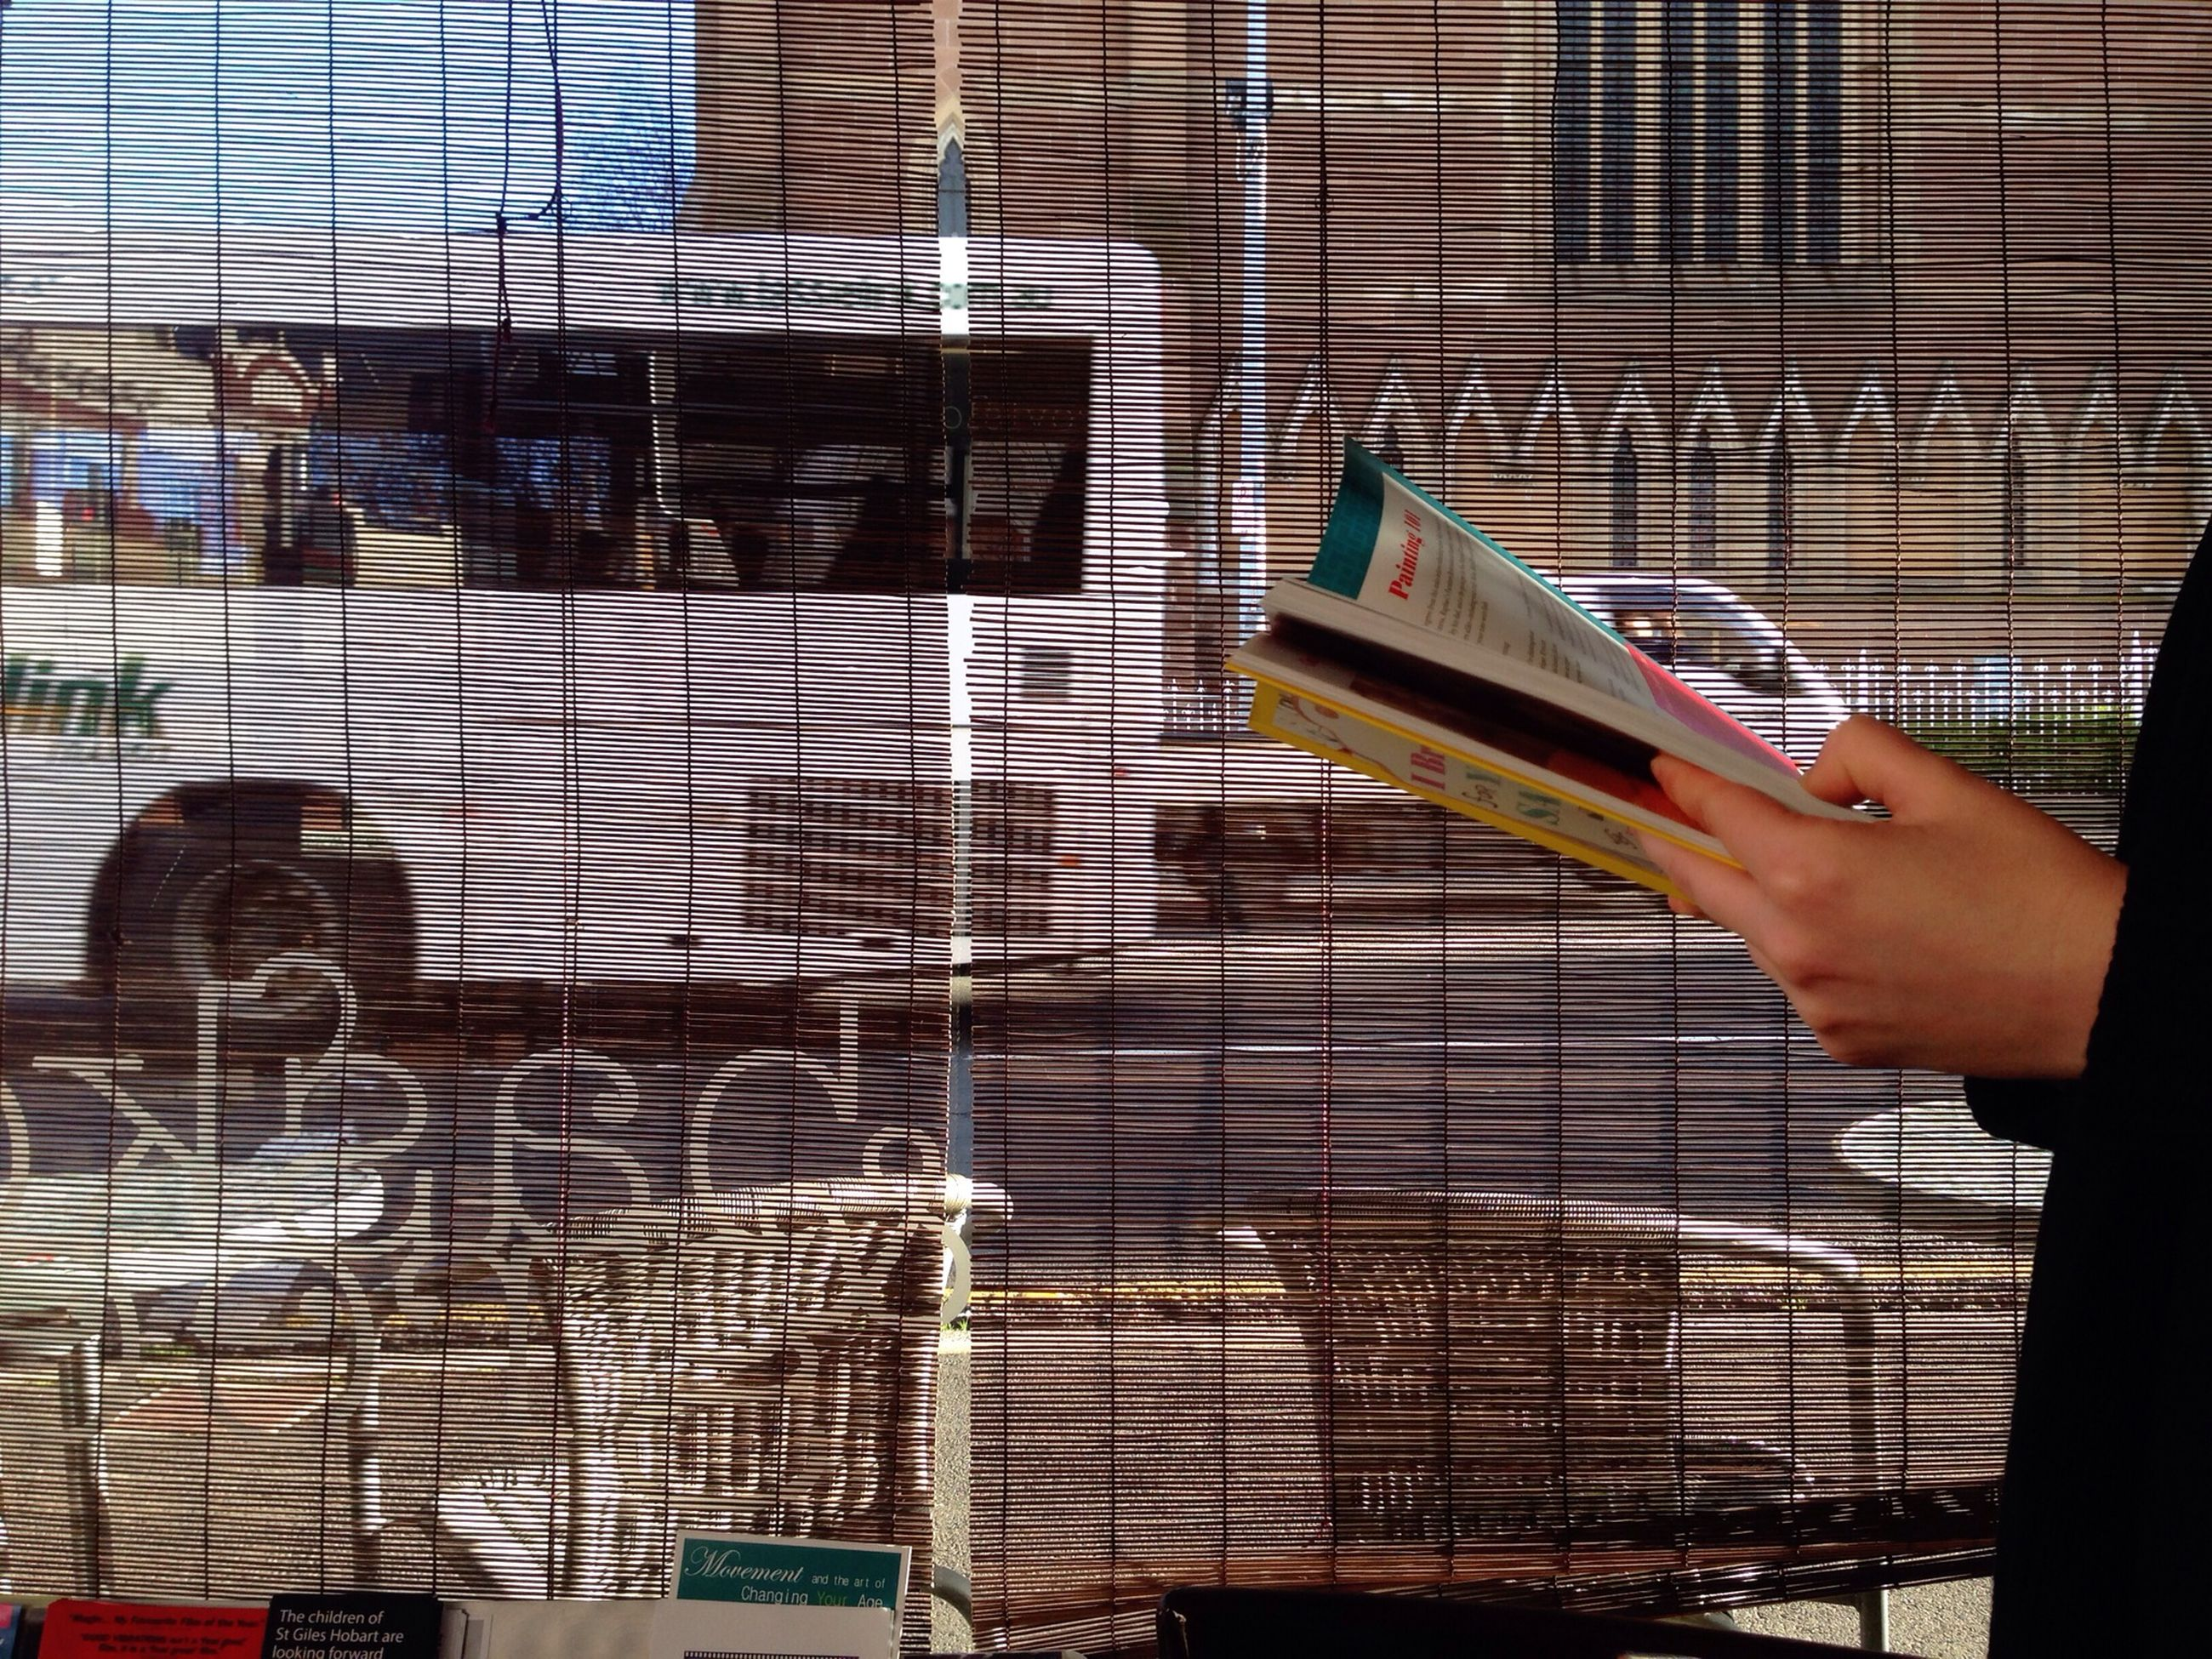 indoors, person, lifestyles, part of, cropped, men, leisure activity, glass - material, built structure, architecture, unrecognizable person, holding, reflection, railing, window, day